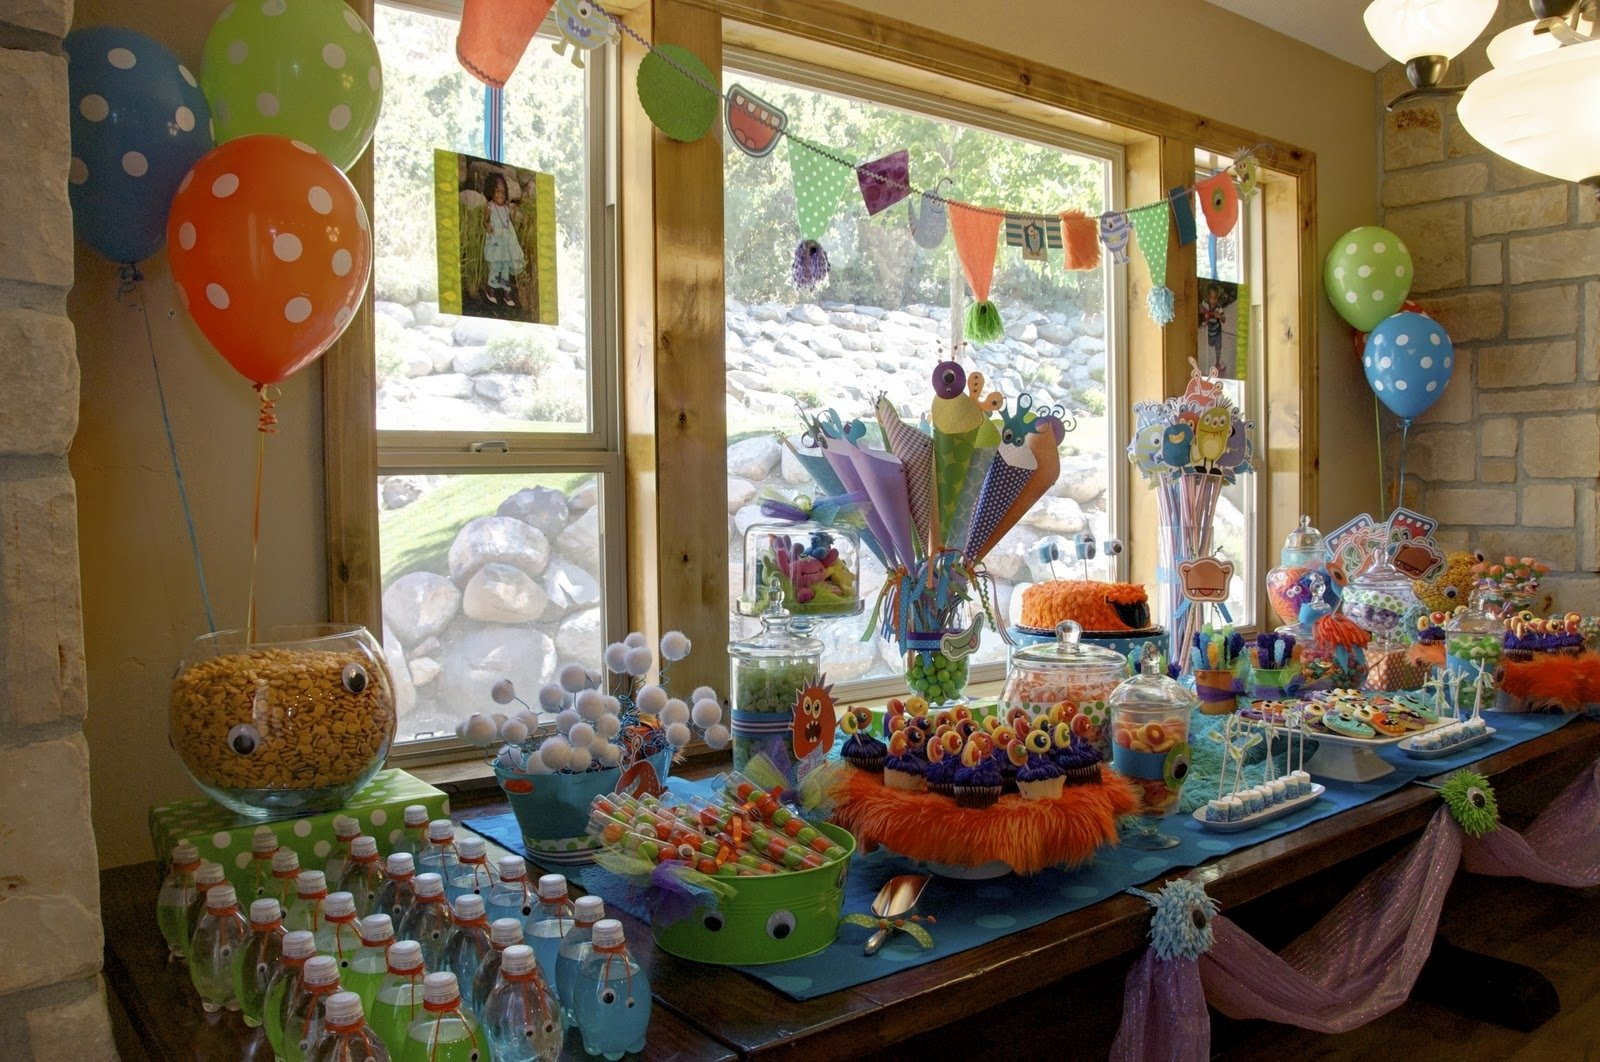 10 Trendy 13 Year Old Birthday Party Ideas For Boys my friends birthday is in the winter and she wanteaes cause shes 28 2020